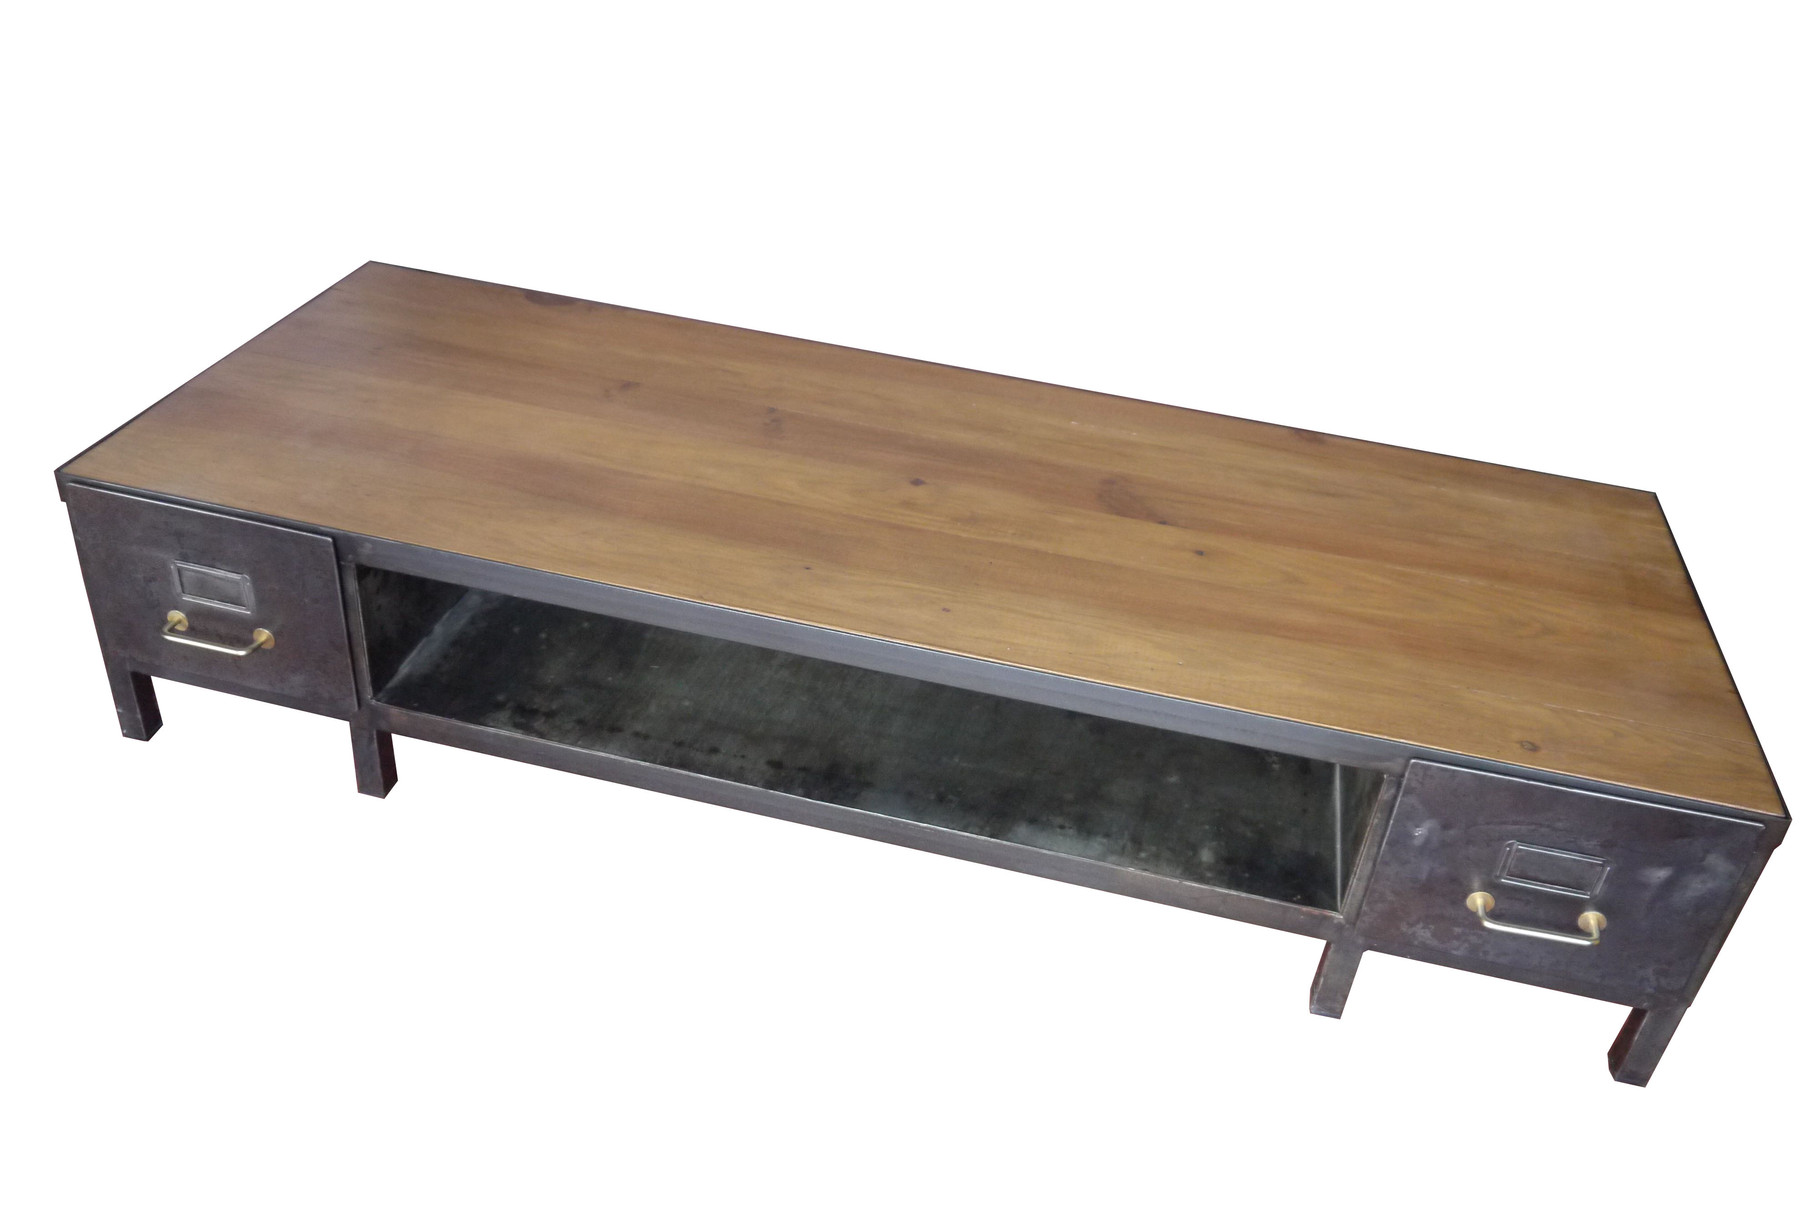 Meuble Tv Industriel Table Basse Meuble Tv Industriel Atelier Vintage